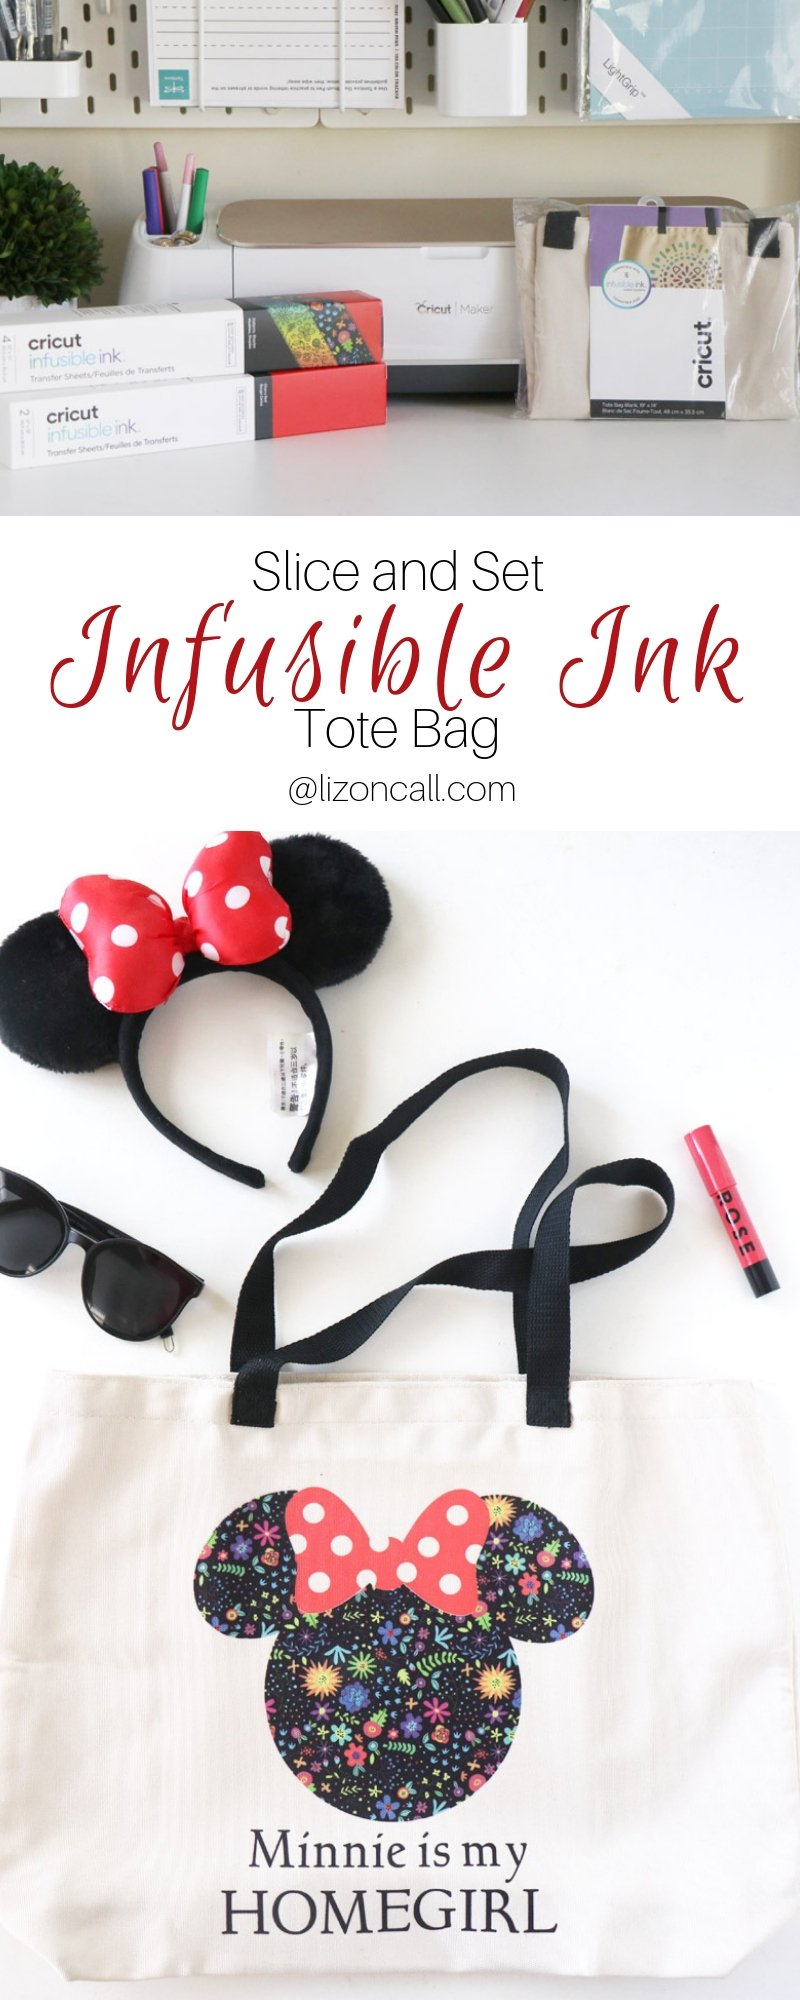 Titled pinnable image of Cricut Infusible Ink Tote bag.